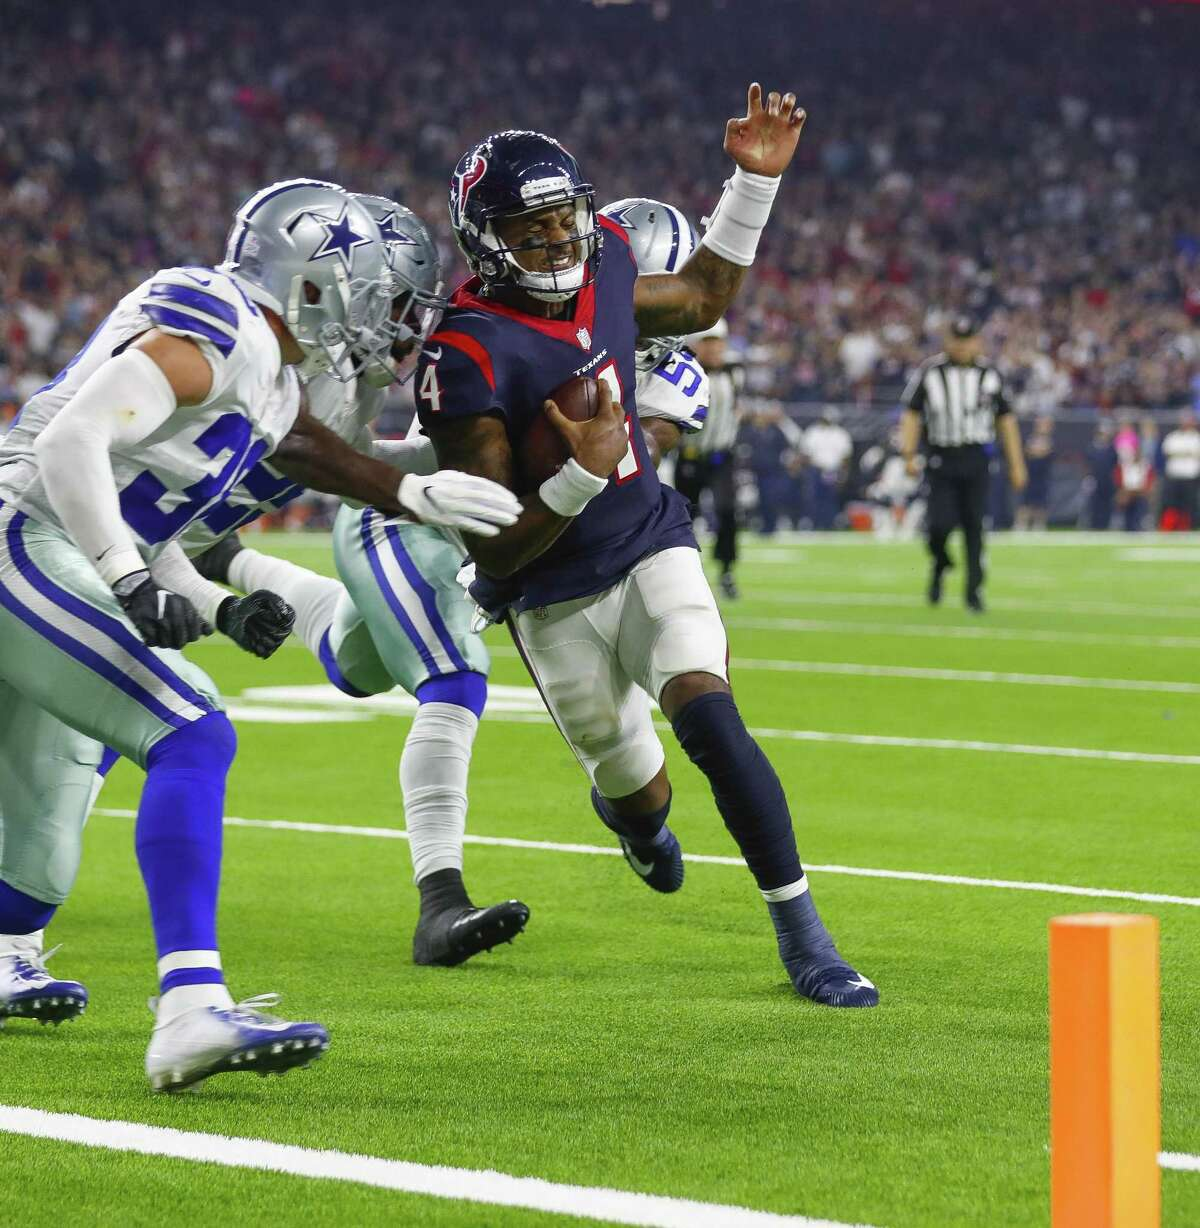 Texans quarterback Deshaun Watson pays a physical price for taking on defenses as a ballcarrier, leaving him day-to-day with a chest injury leading up to the Bills game Sunday at NRG Stadium.